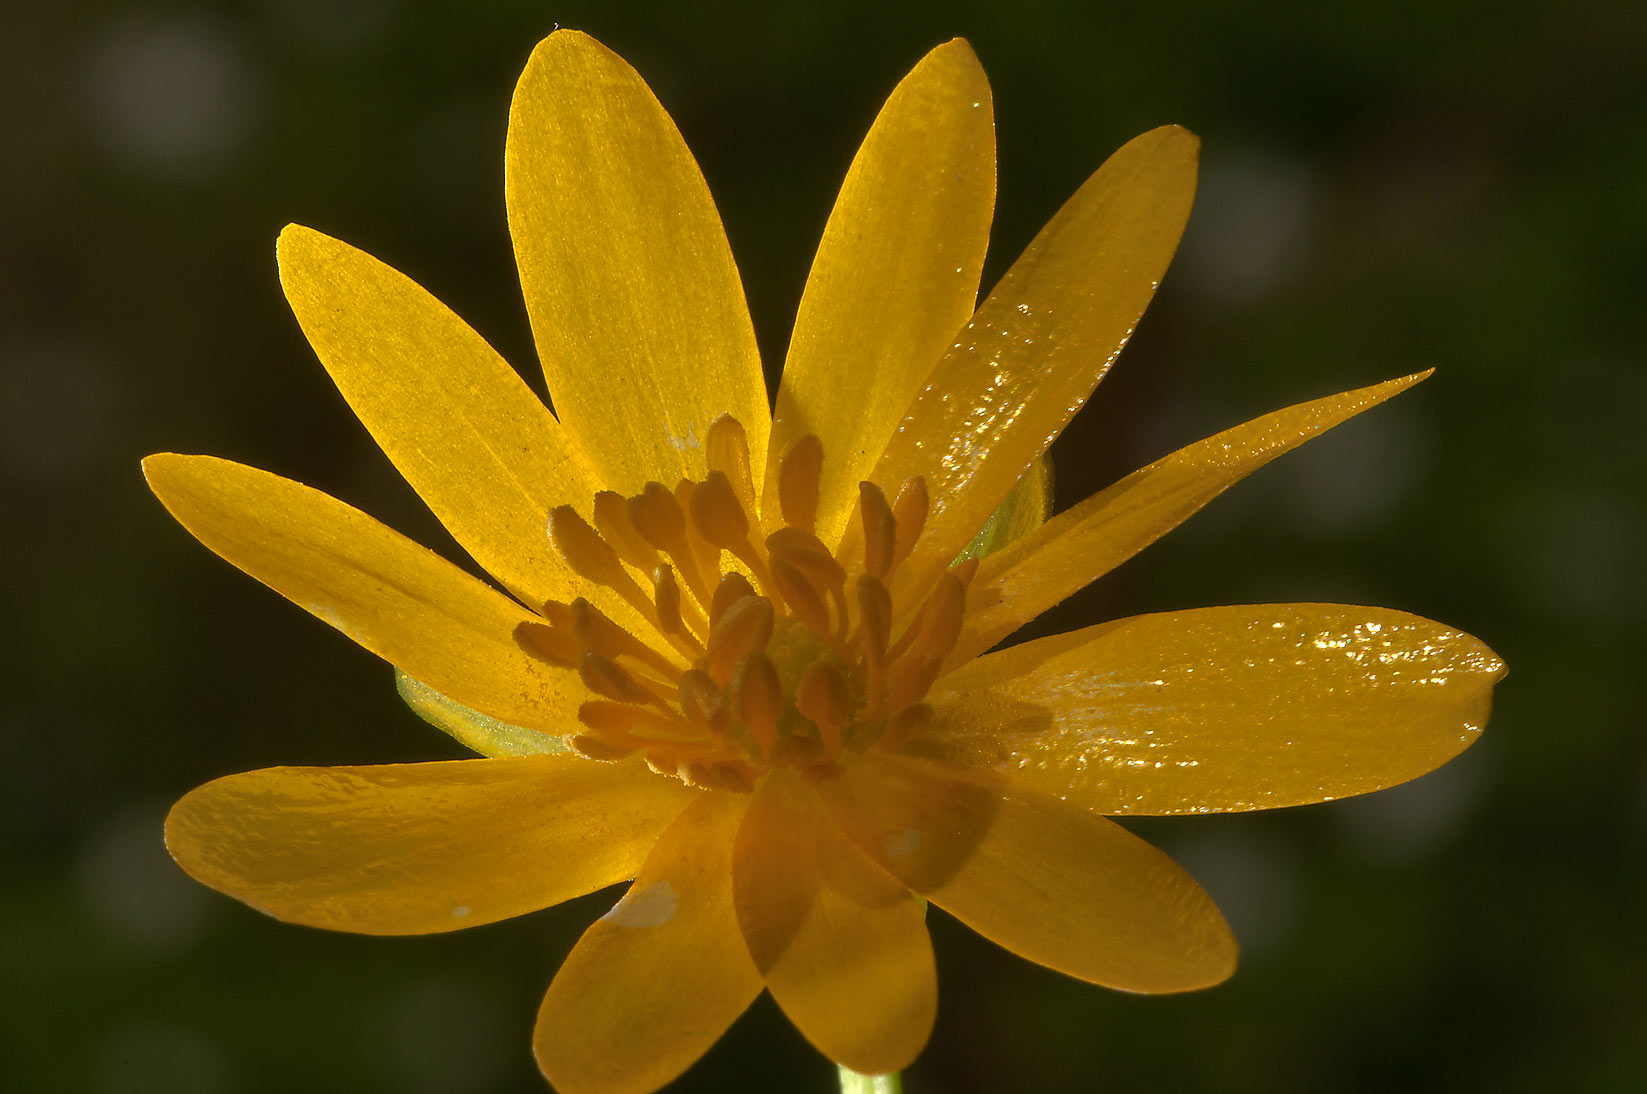 Lesser celandine (Ficaria verna, Russian name...a suburb of St.Petersburg, Russia